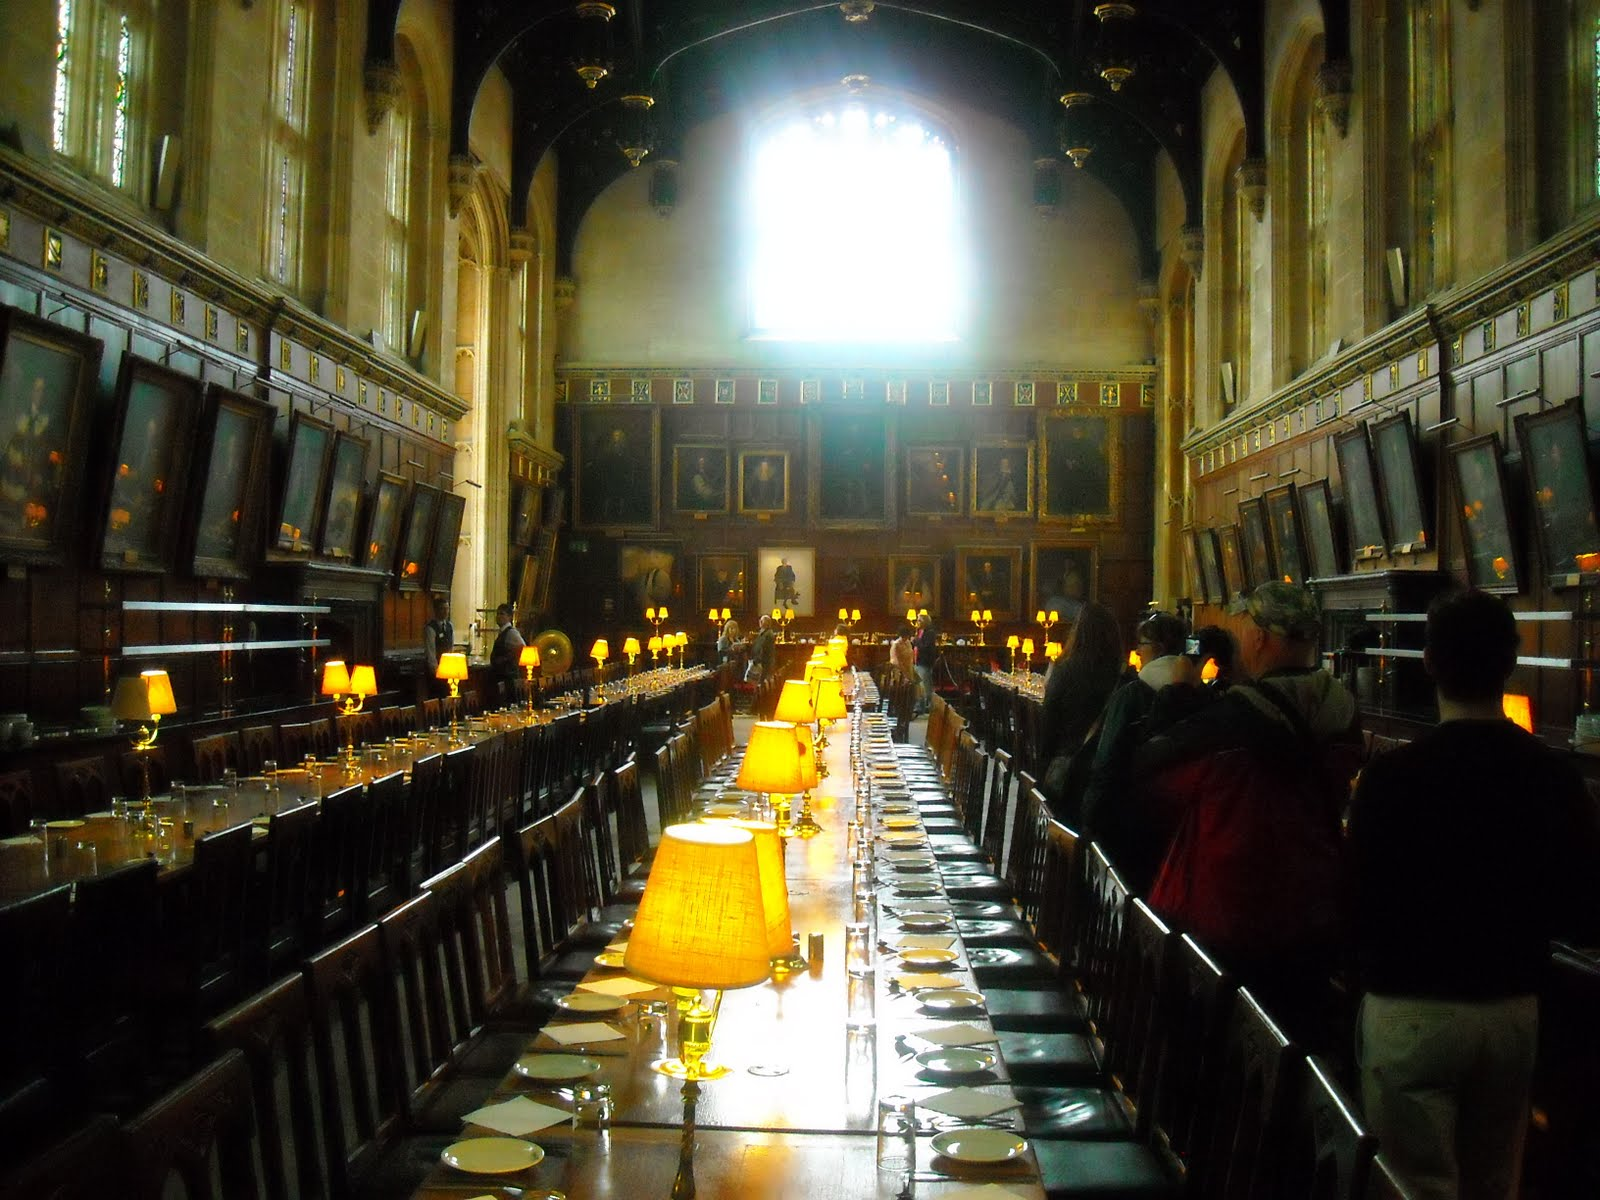 Most Inspiring Wallpaper Harry Potter Dining Hall - 439  Best Photo Reference_19249.JPG